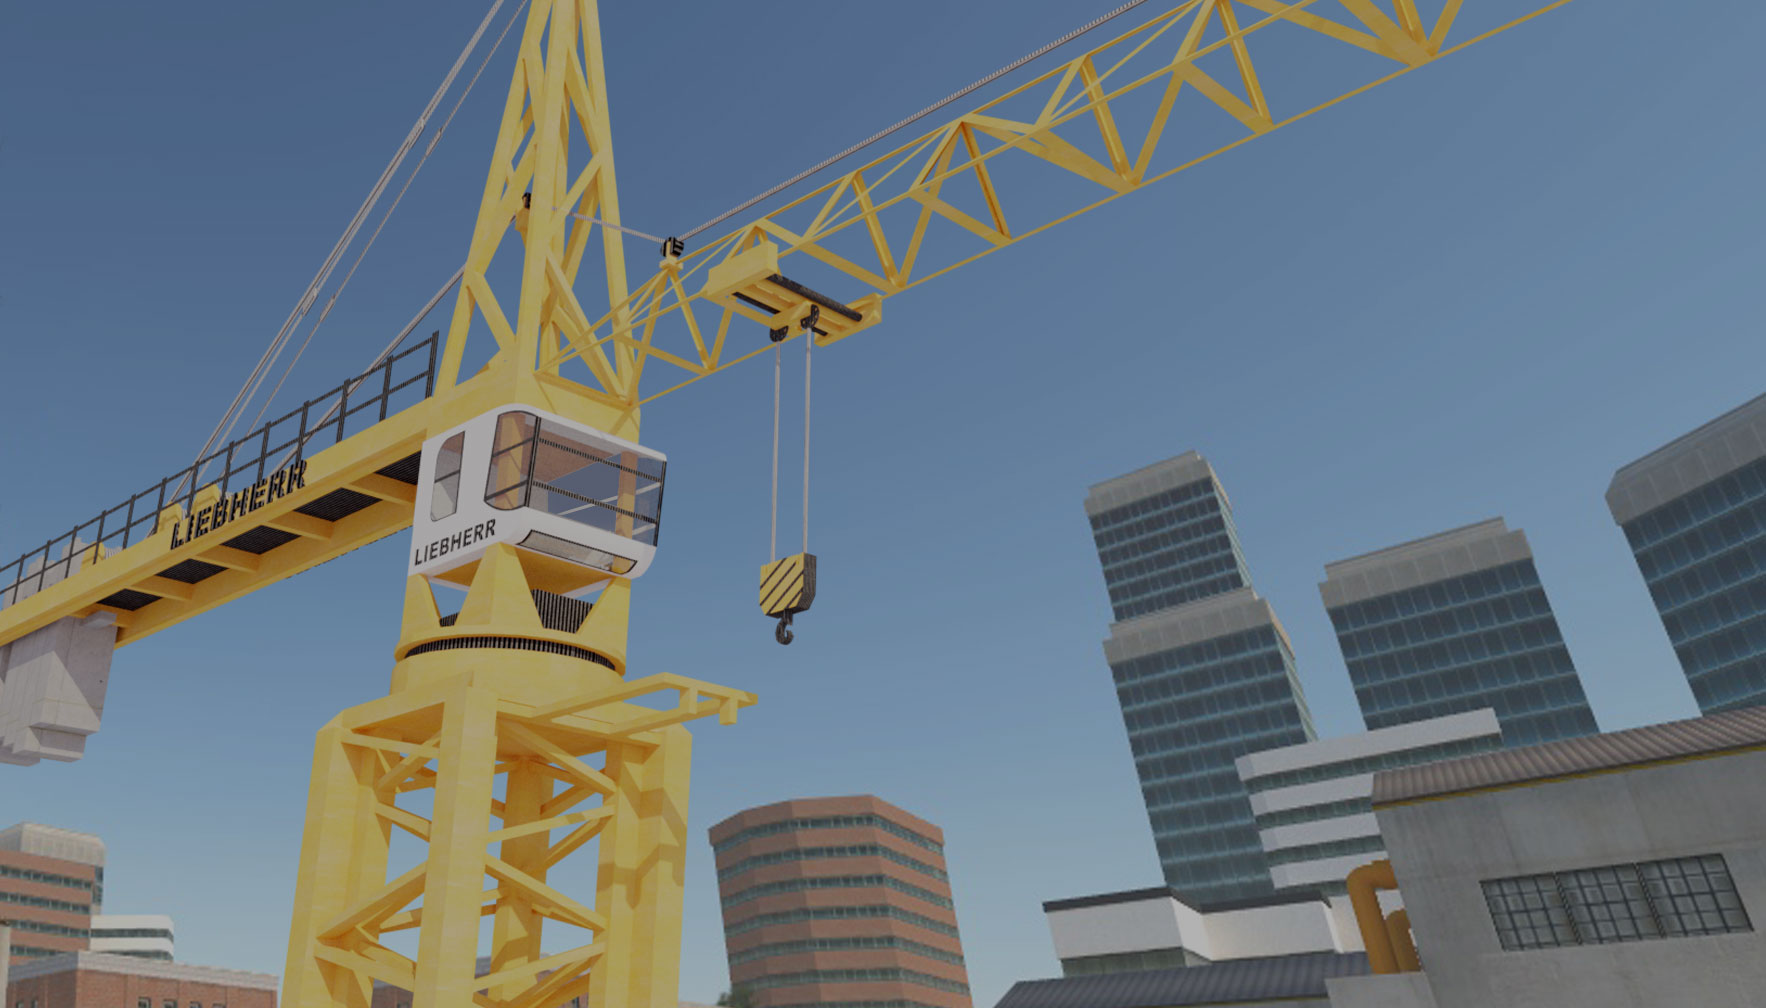 ITIVR-Header-TowerCrane-web.jpg